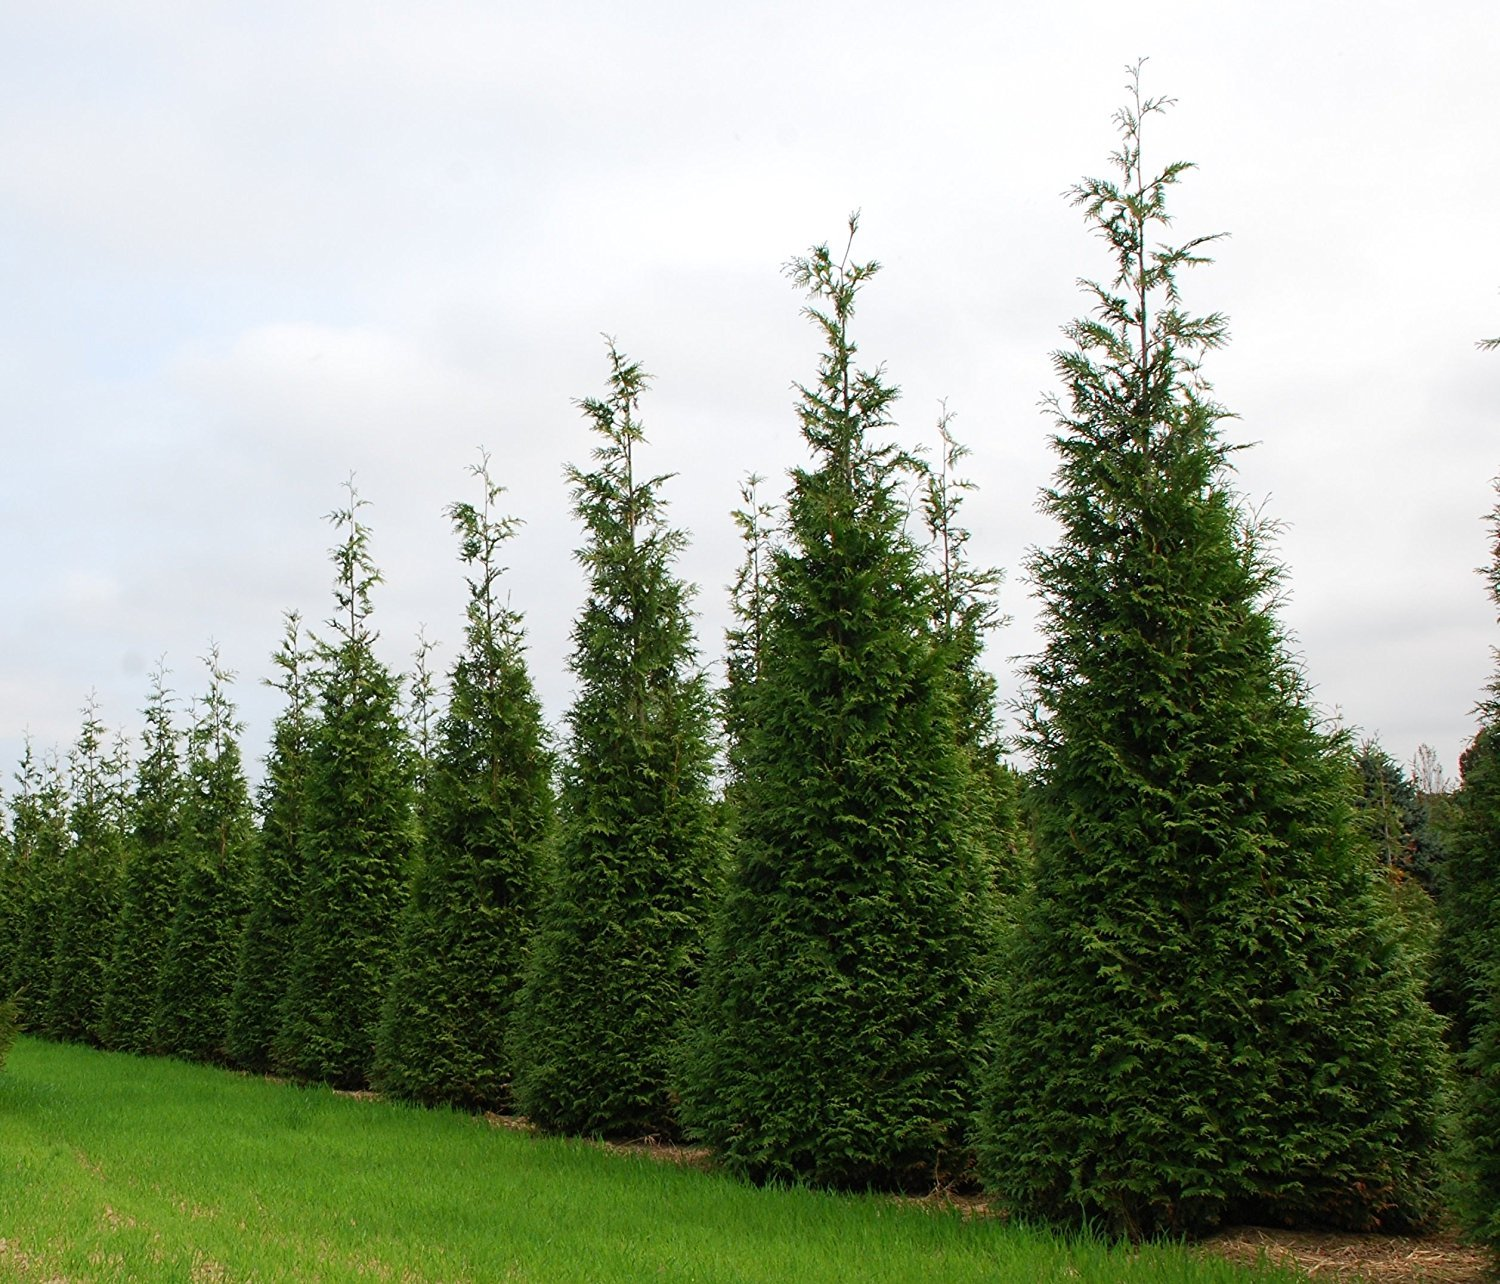 Thuja Green Giant Arborvitae Qty 5 Live Trees Evergreen Privacy - 2'' Container